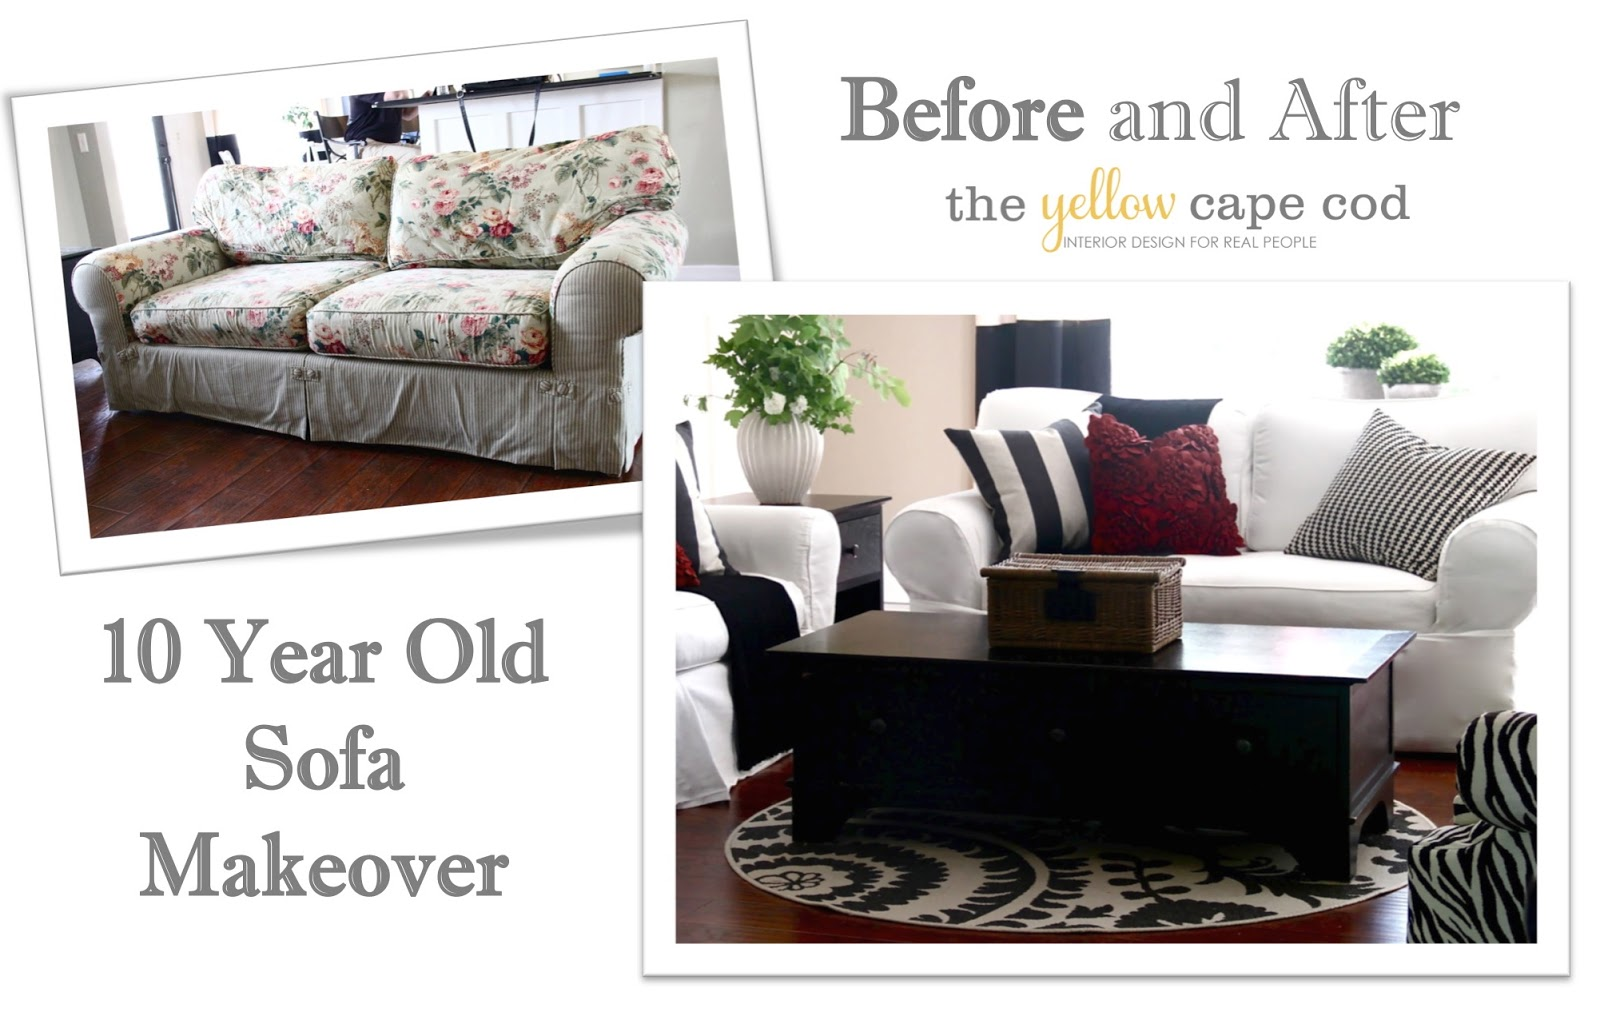 The Yellow Cape Cod Ten Year Old Sofa Makeover : 00015W from www.theyellowcapecod.com size 1600 x 1012 jpeg 217kB